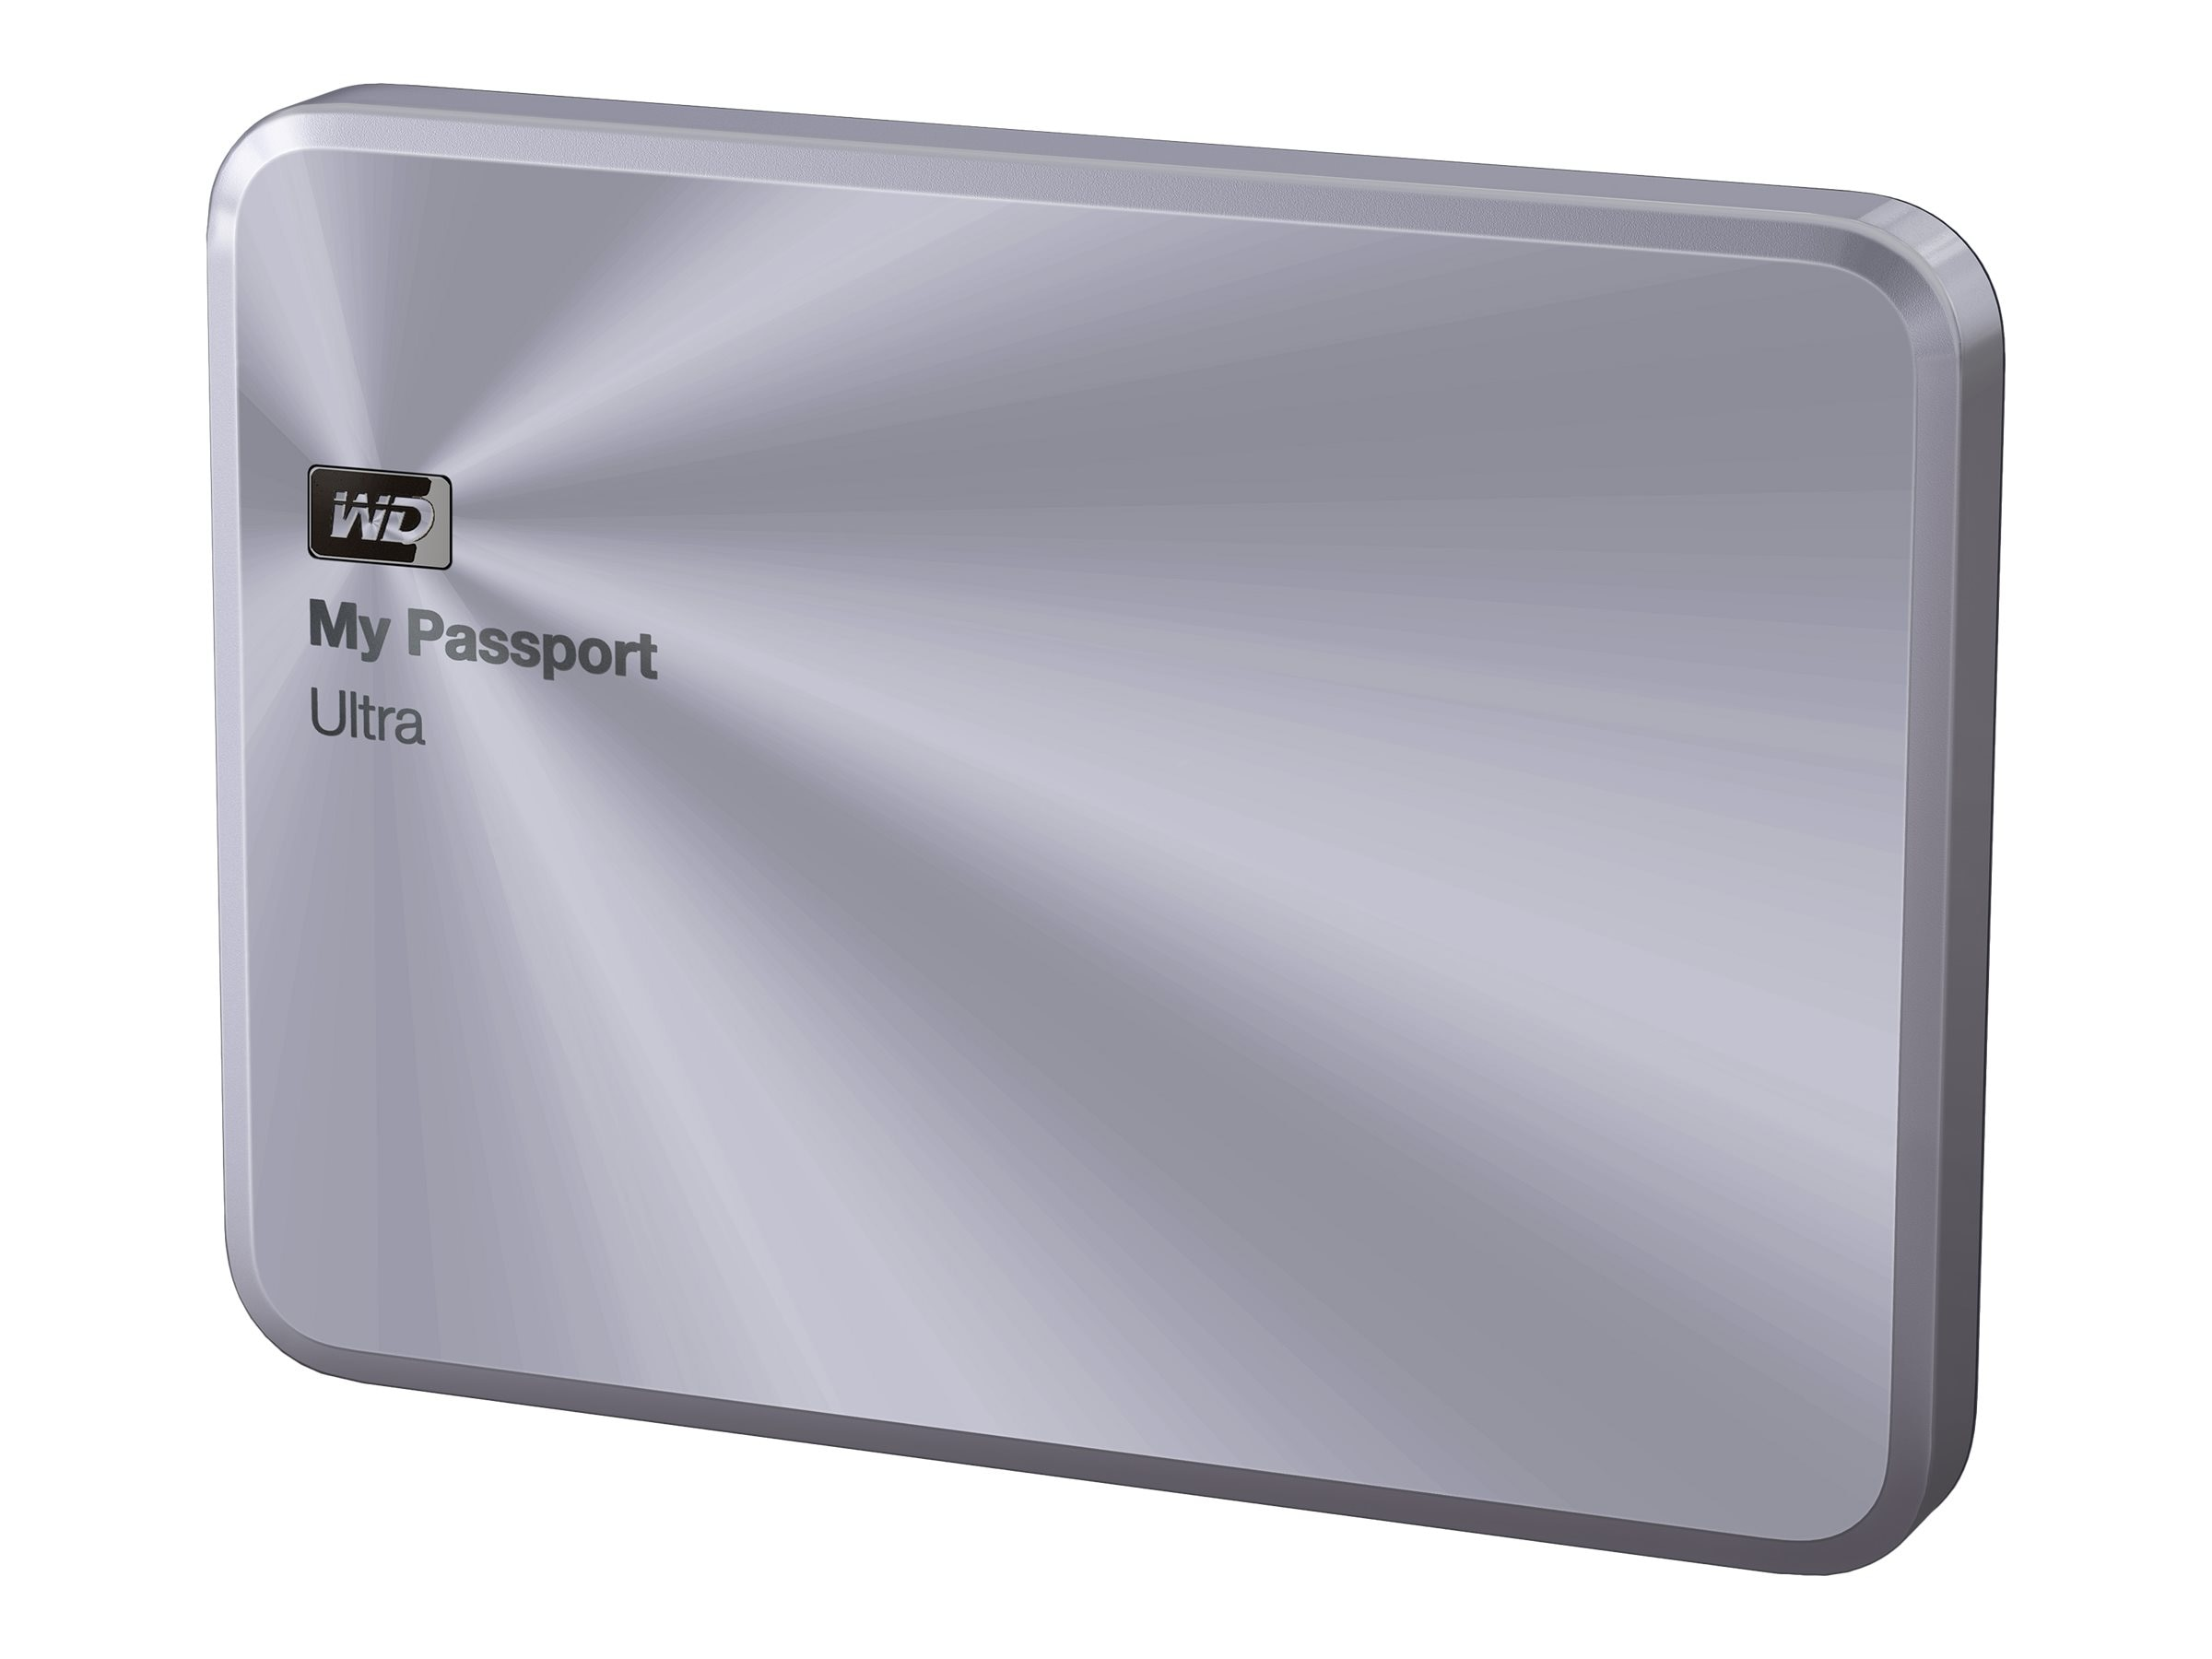 WD 3TB My Passport Ultra Metal Edition USB 3.0 Portable Hard Drive - Silver